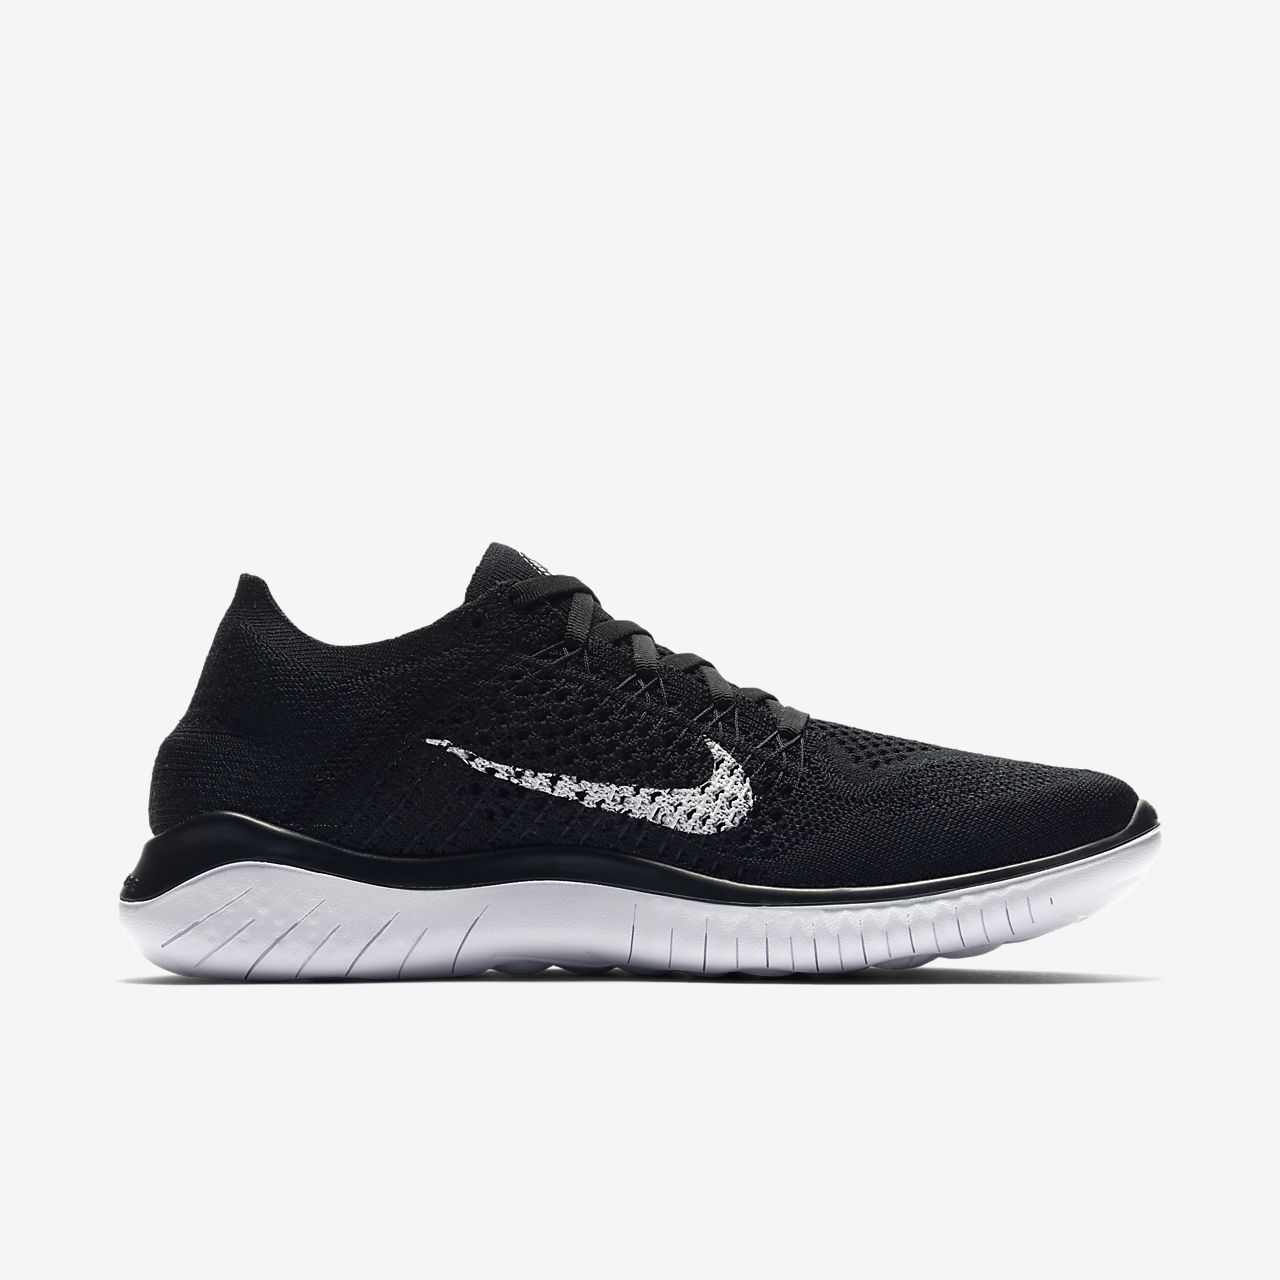 new product 5113c d57db free-rn-flyknit-2018-running-shoe-9vq7Fr.jpg